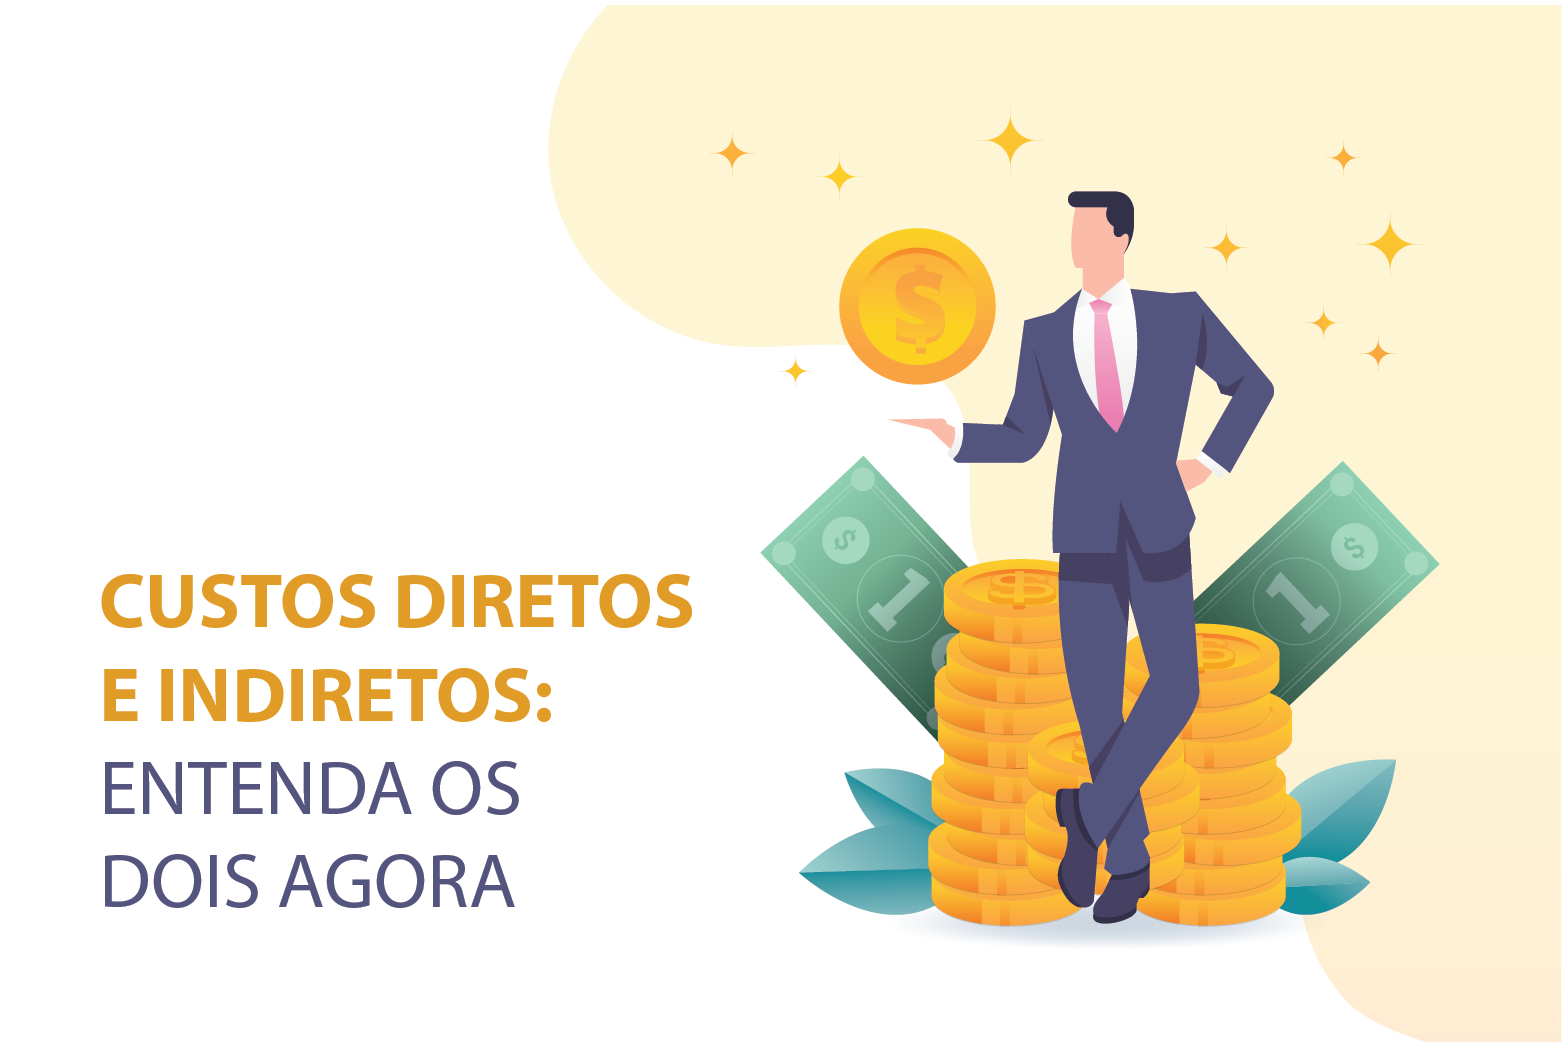 custos diretos e indiretos 01